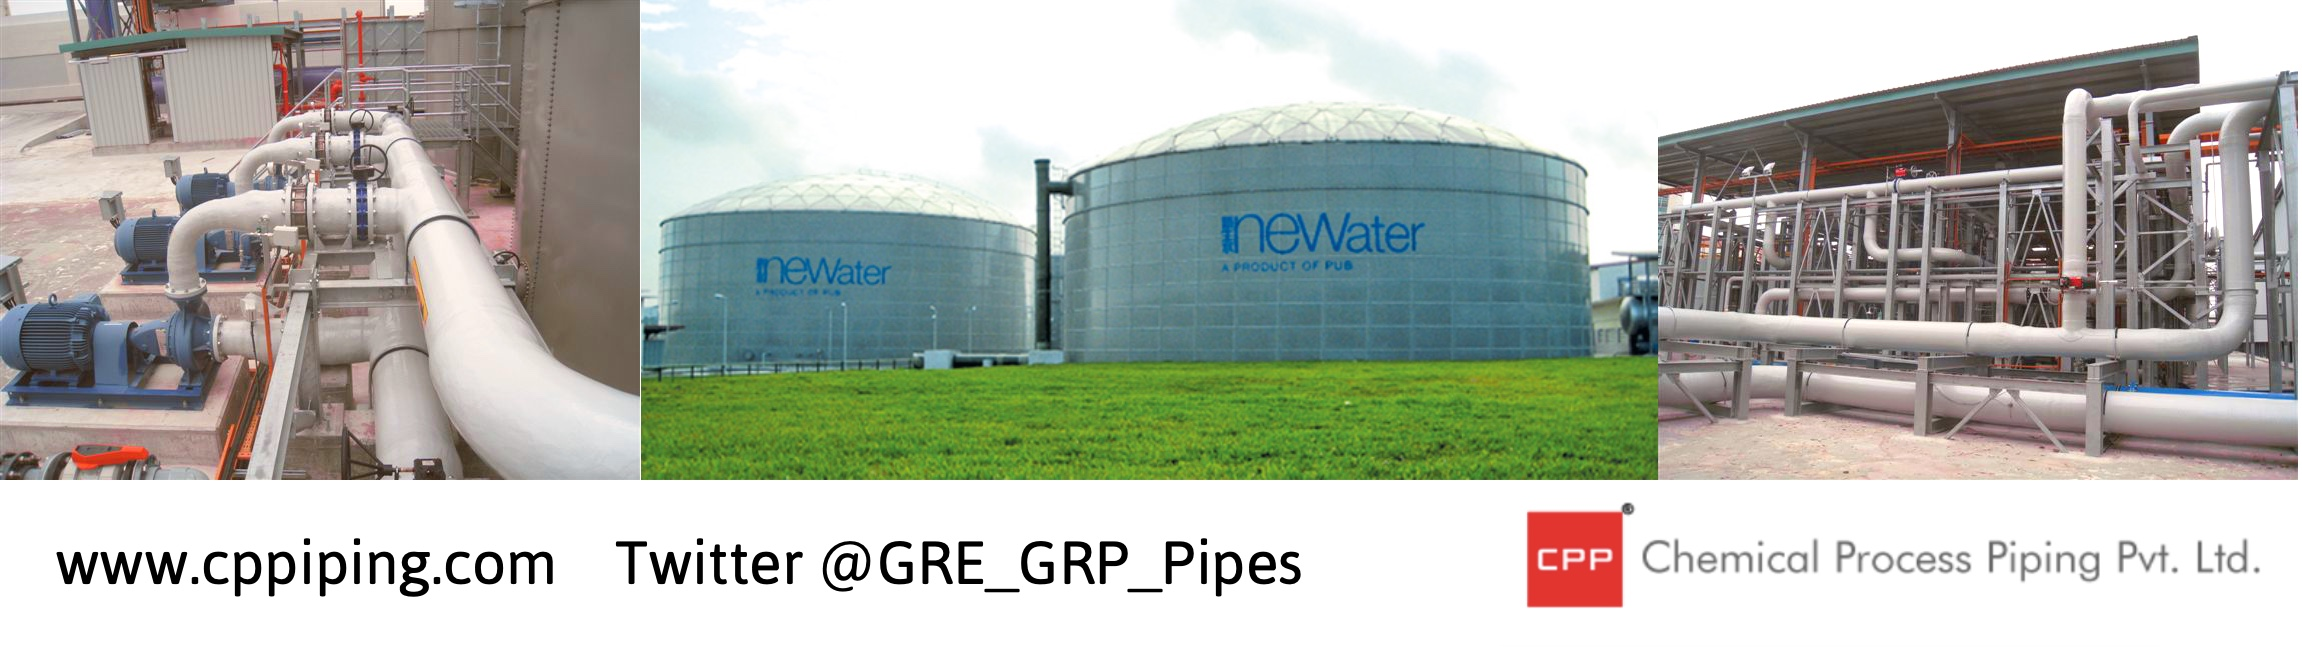 GRP Piping for Changi NEWater Plant Singapore